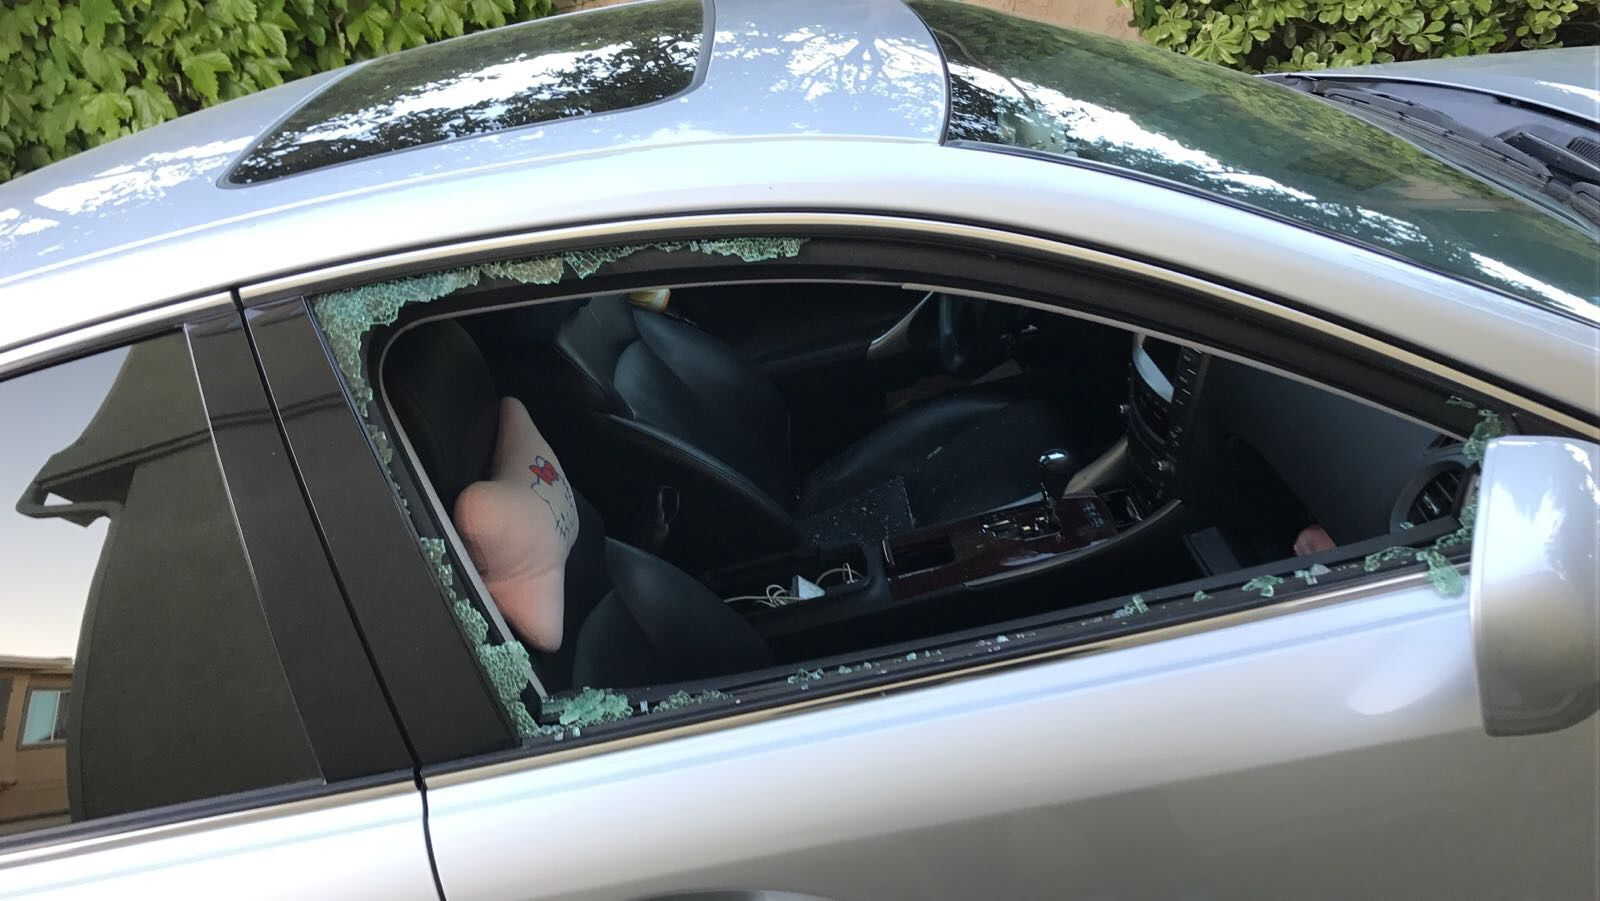 Auto glass and windshield service san clemente auto center if your cars side window gets damaged it will need to be replaced san clemente auto center ensures the glass for your side window replacement is as good planetlyrics Image collections